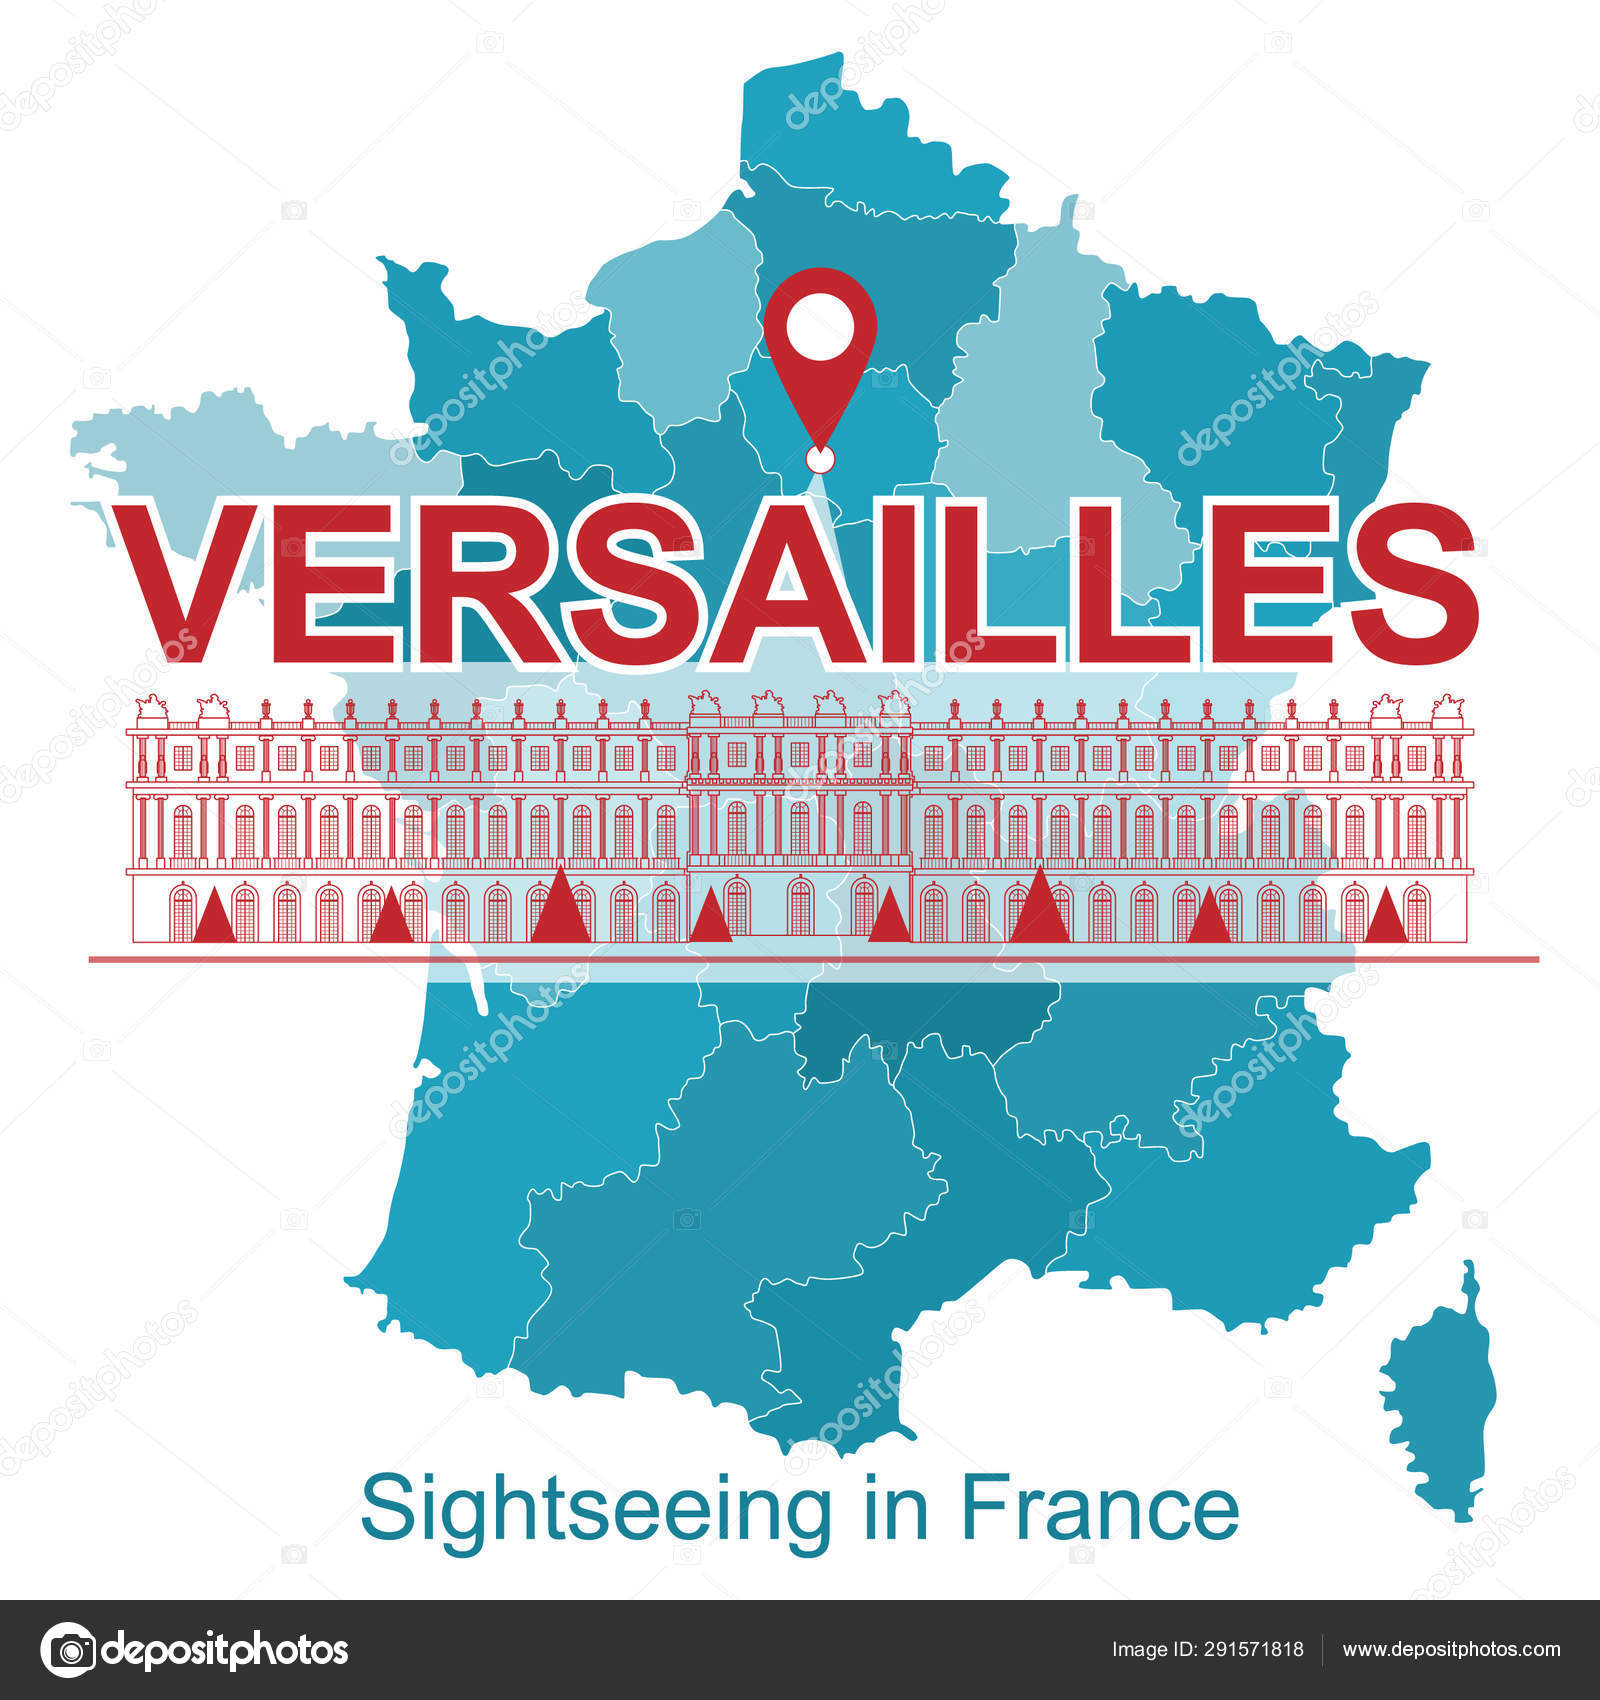 Versailles Map Of France.Map France Image Attractions Versailles Banner Social Networks